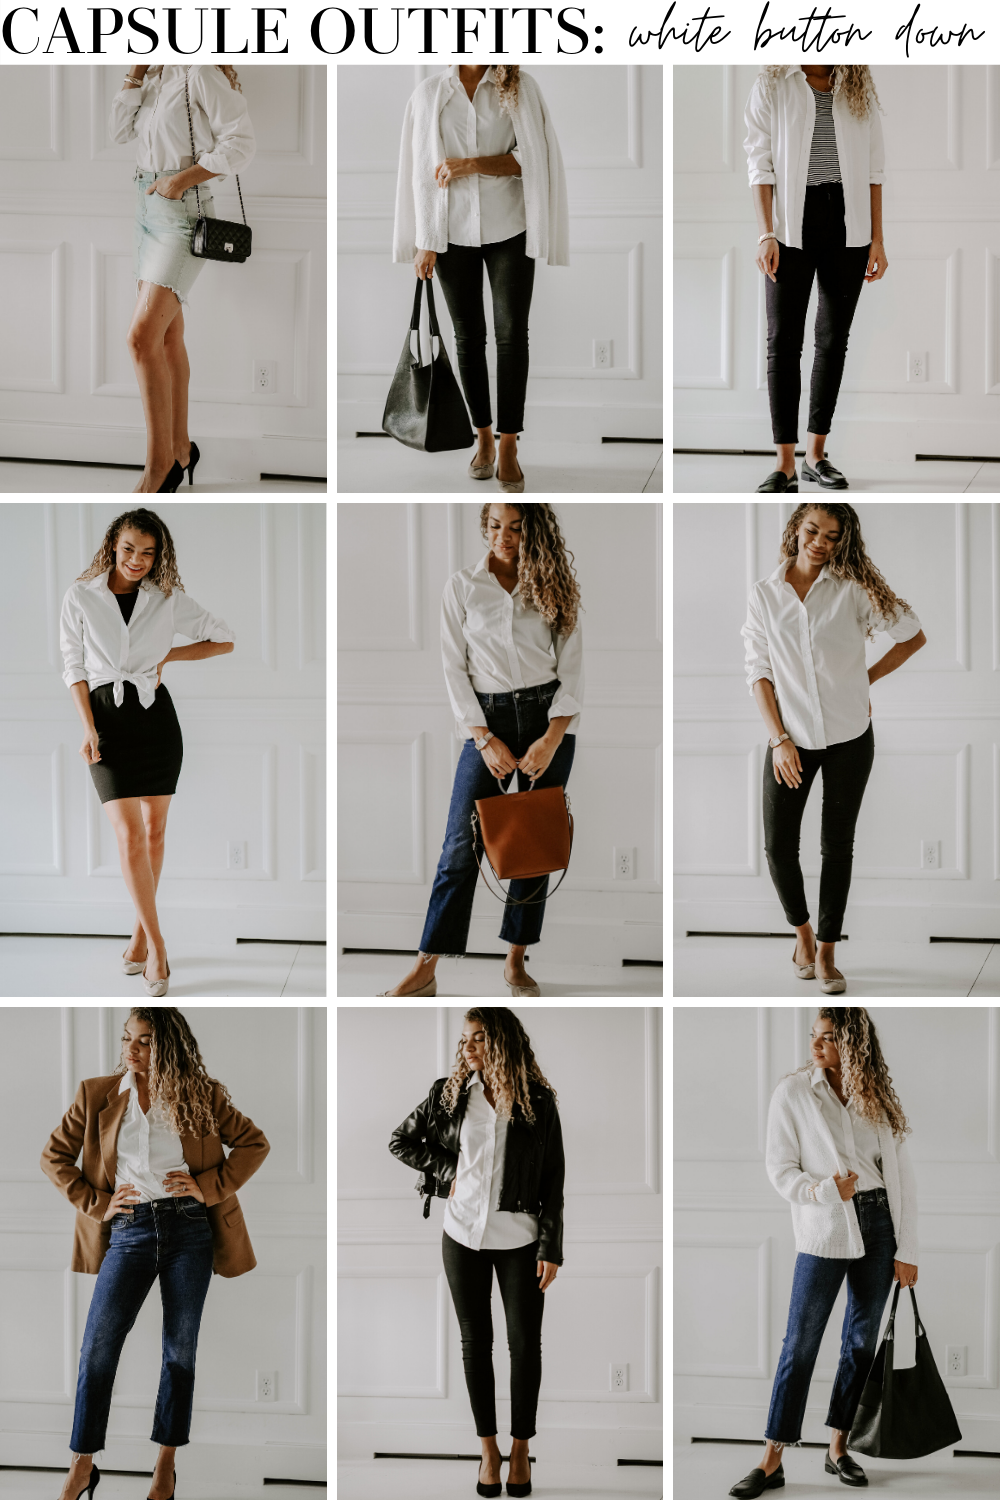 capsule outfits white button down